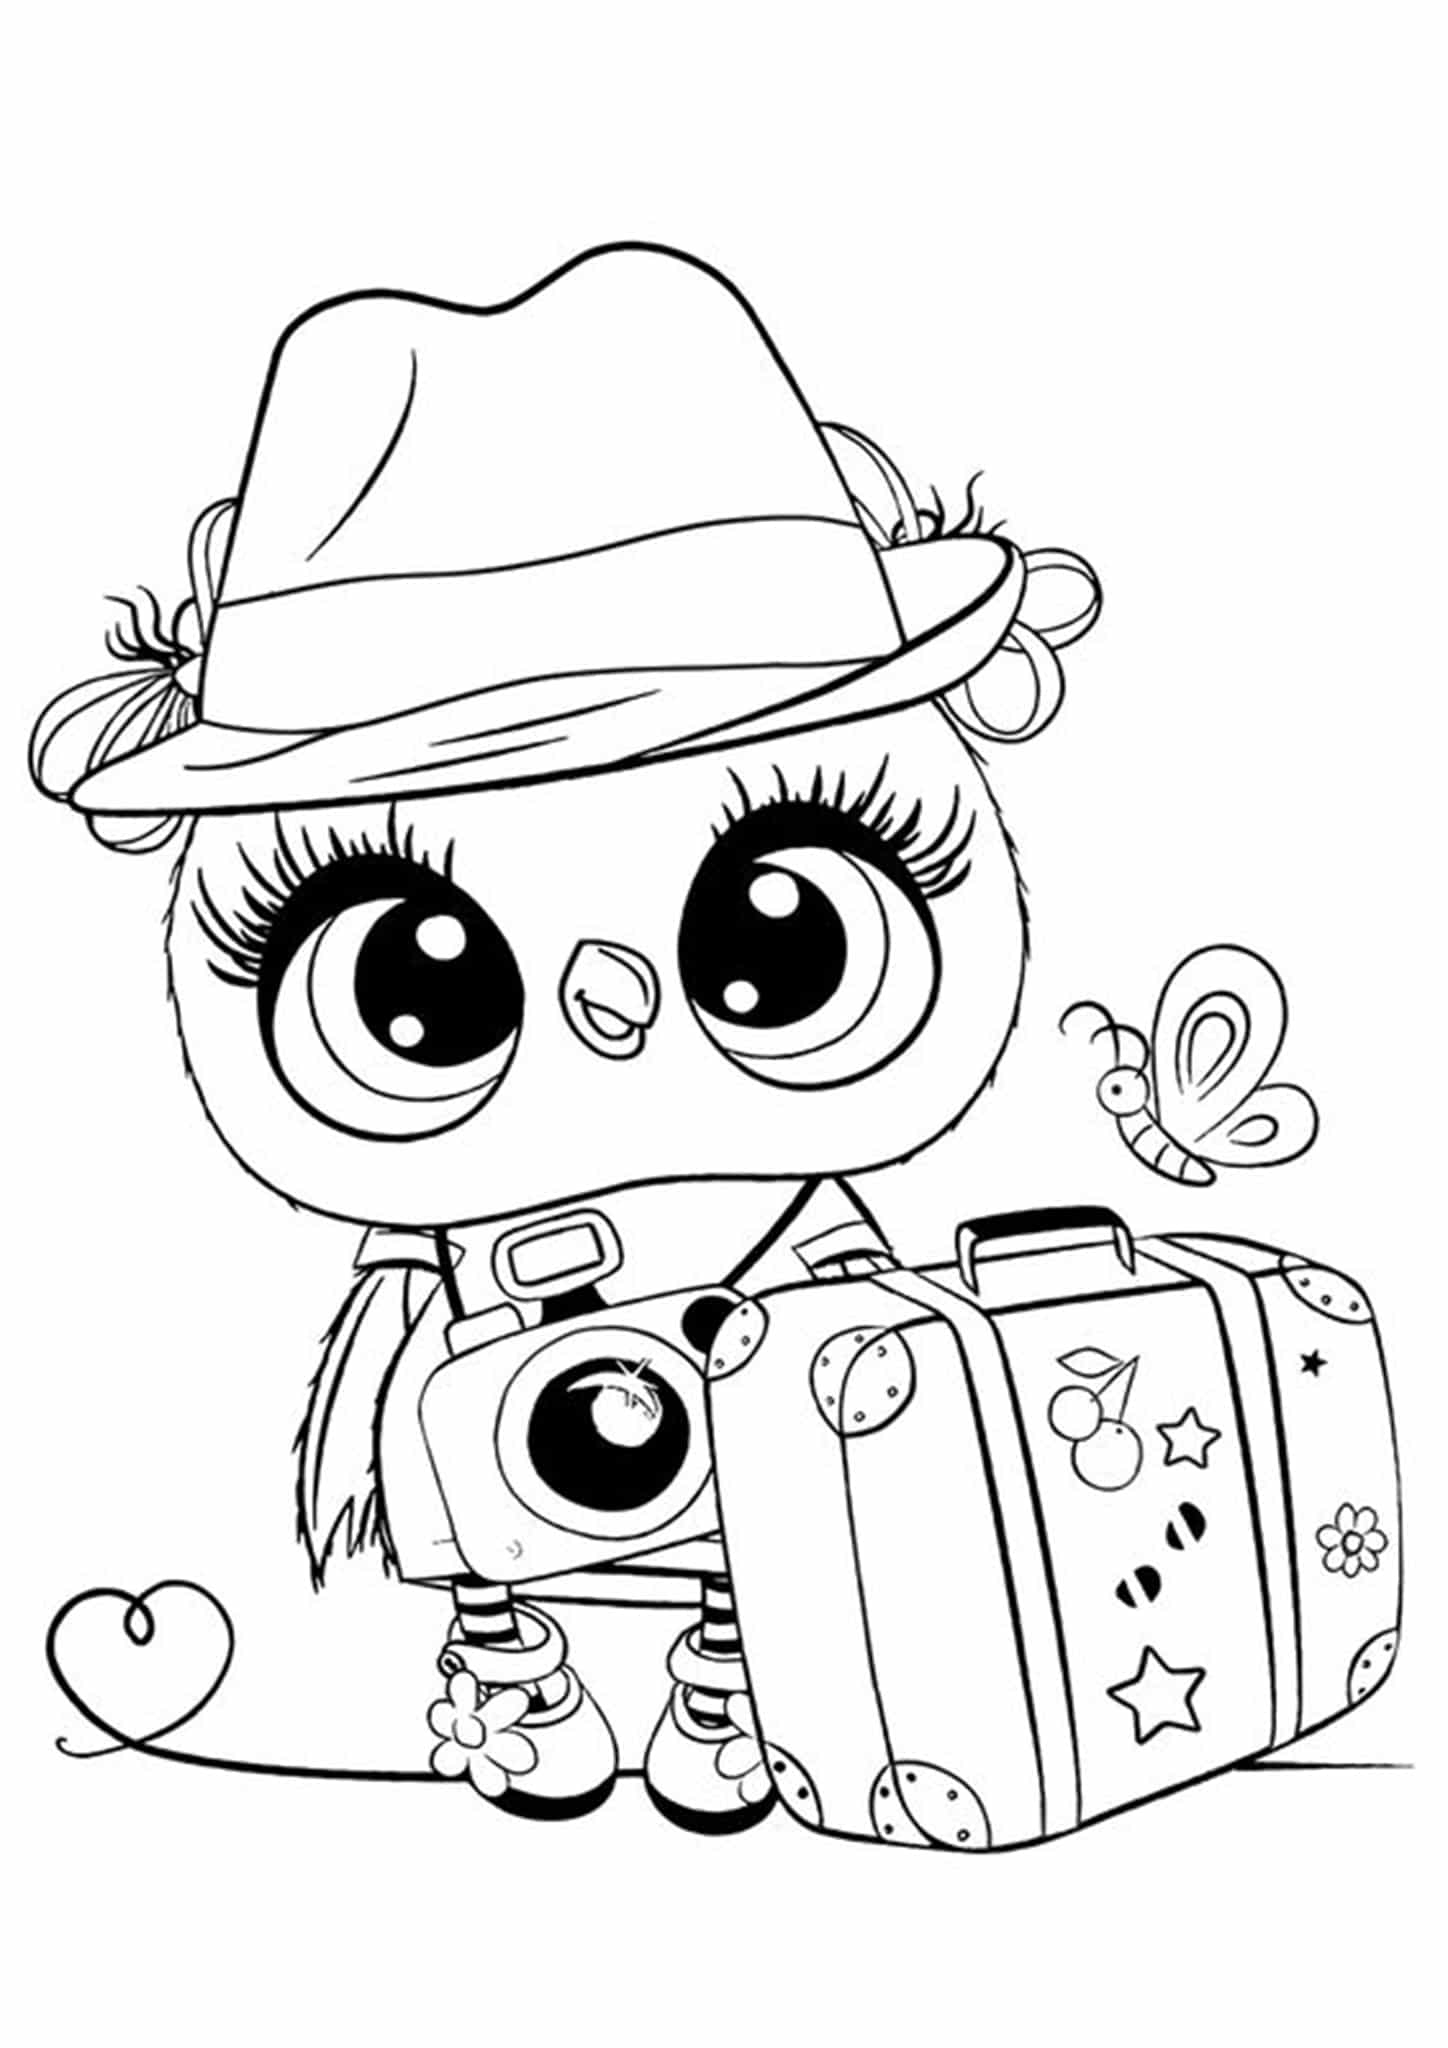 free printable pictures to color free printable tangled coloring pages for kids cool2bkids pictures color to printable free